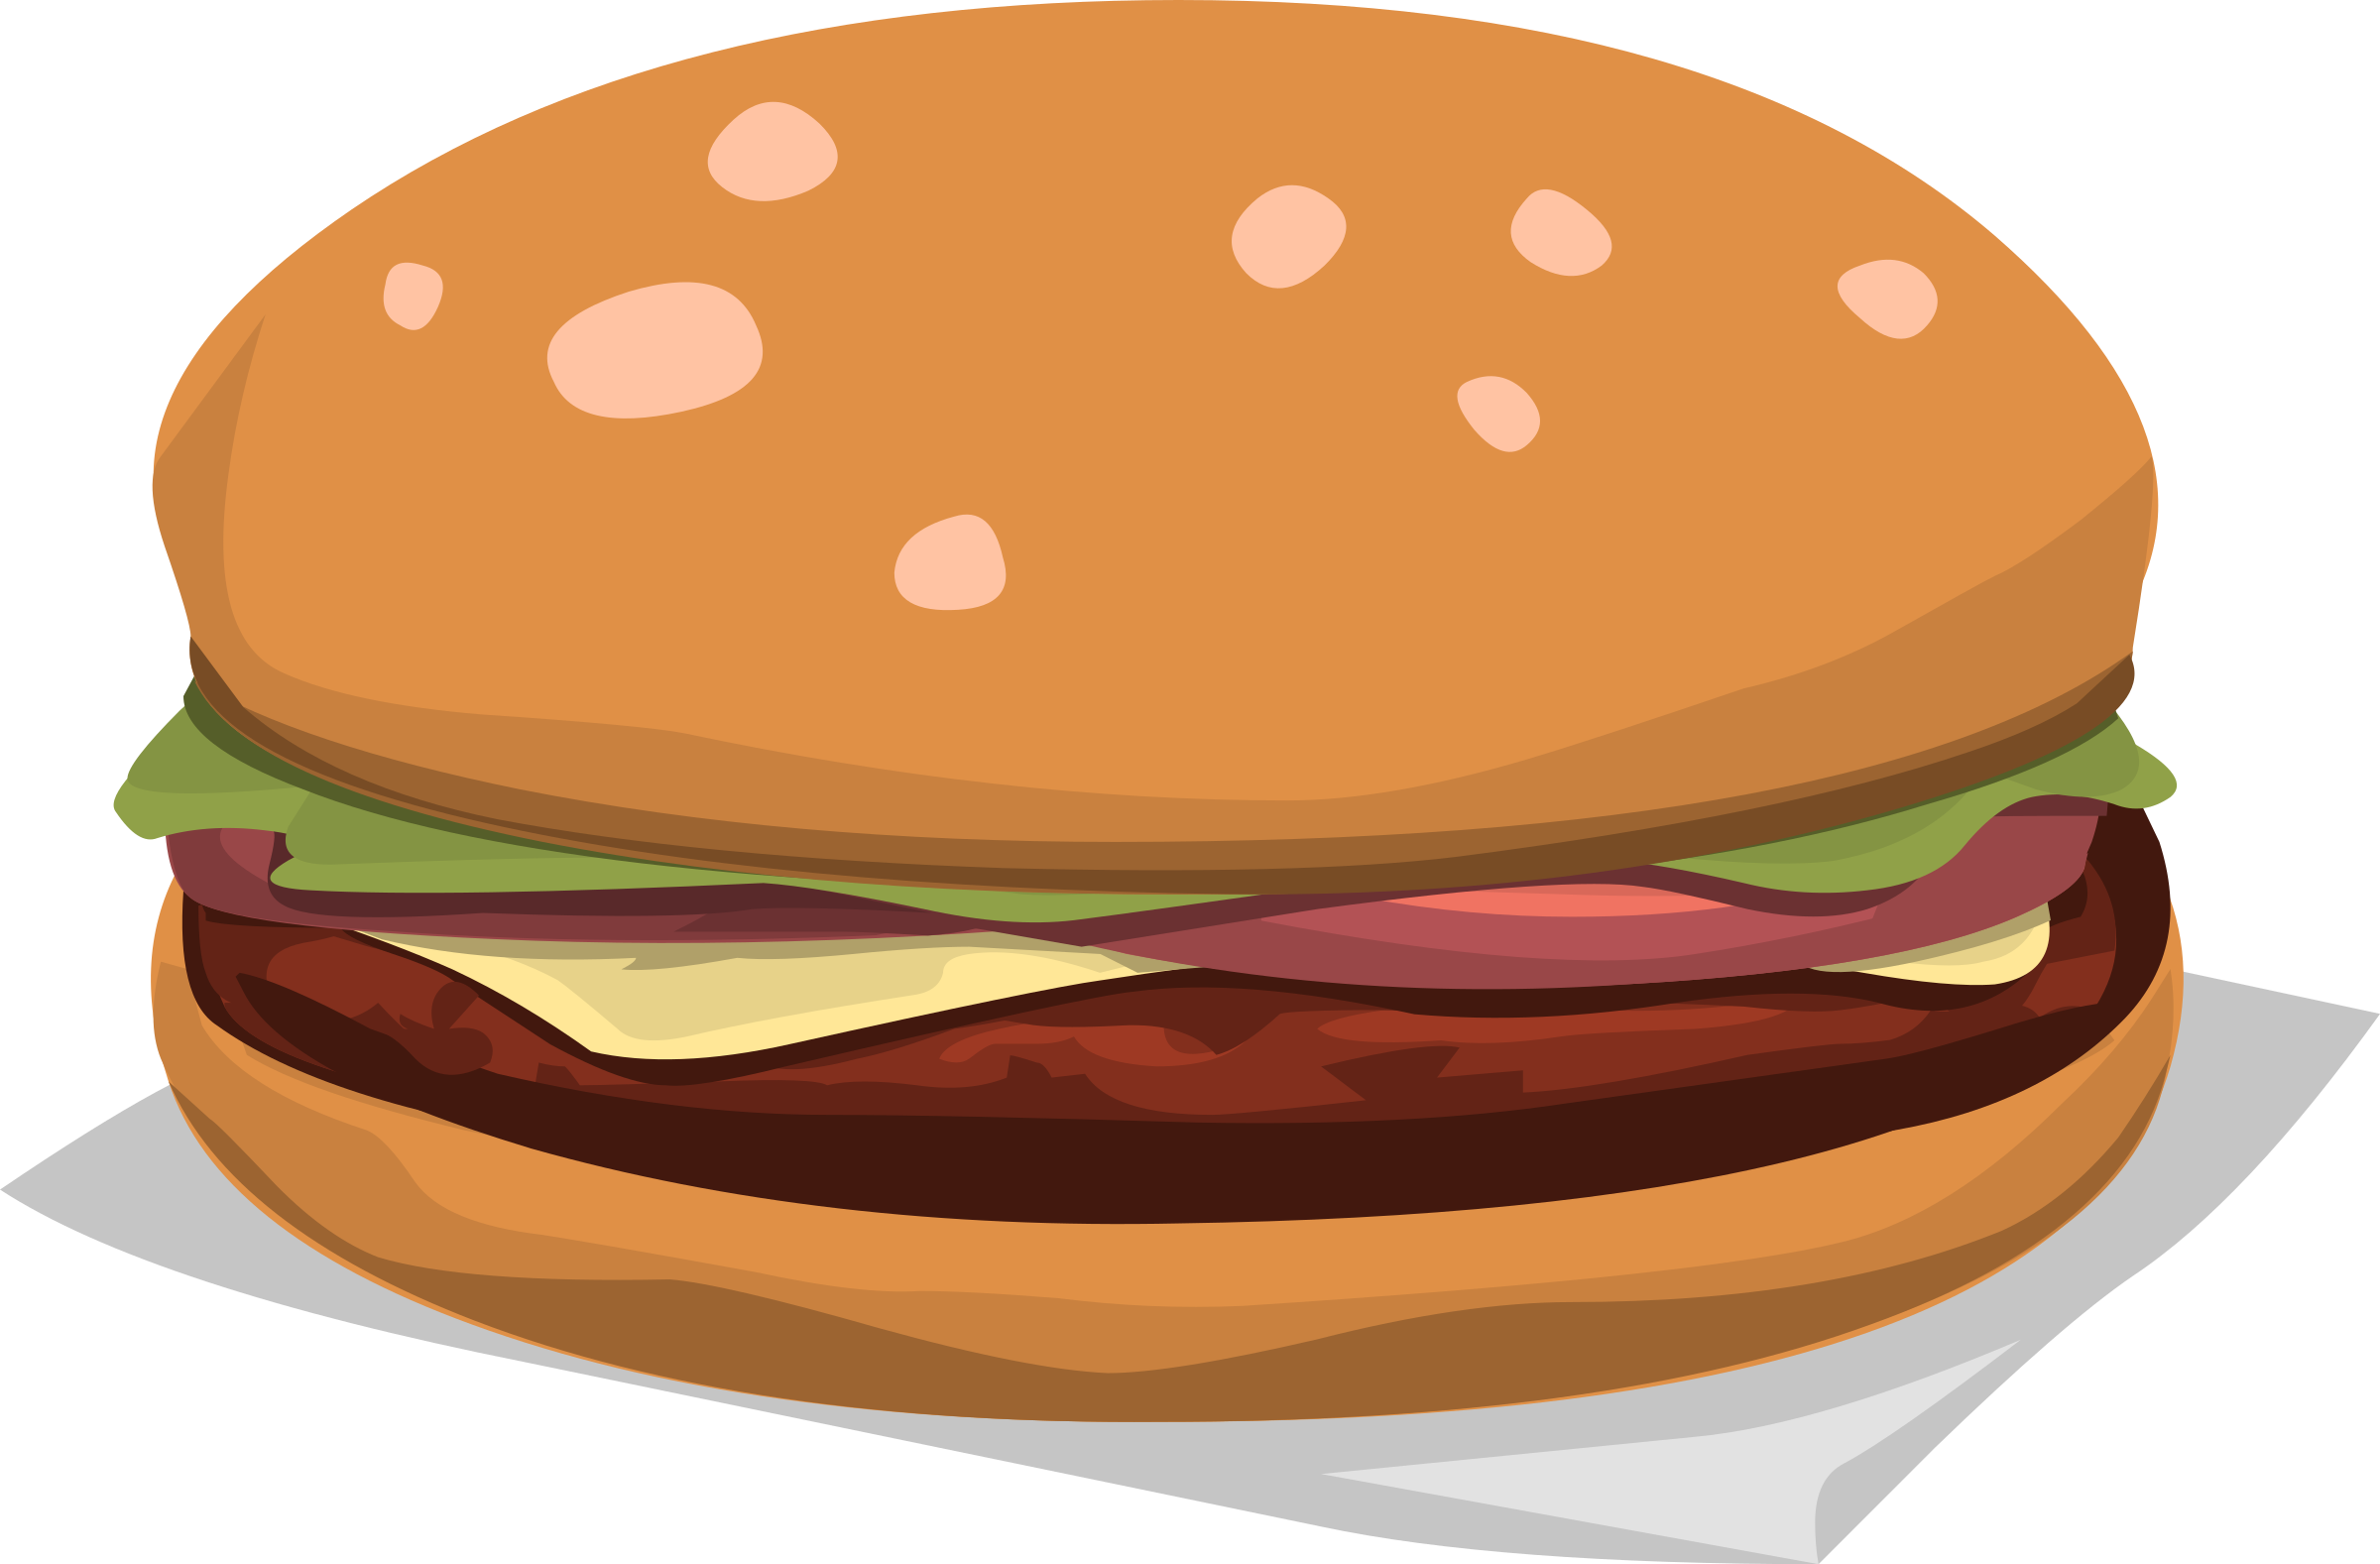 vector freeuse download Pizza free on dumielauxepices. Hamburger clipart vegetarian burger